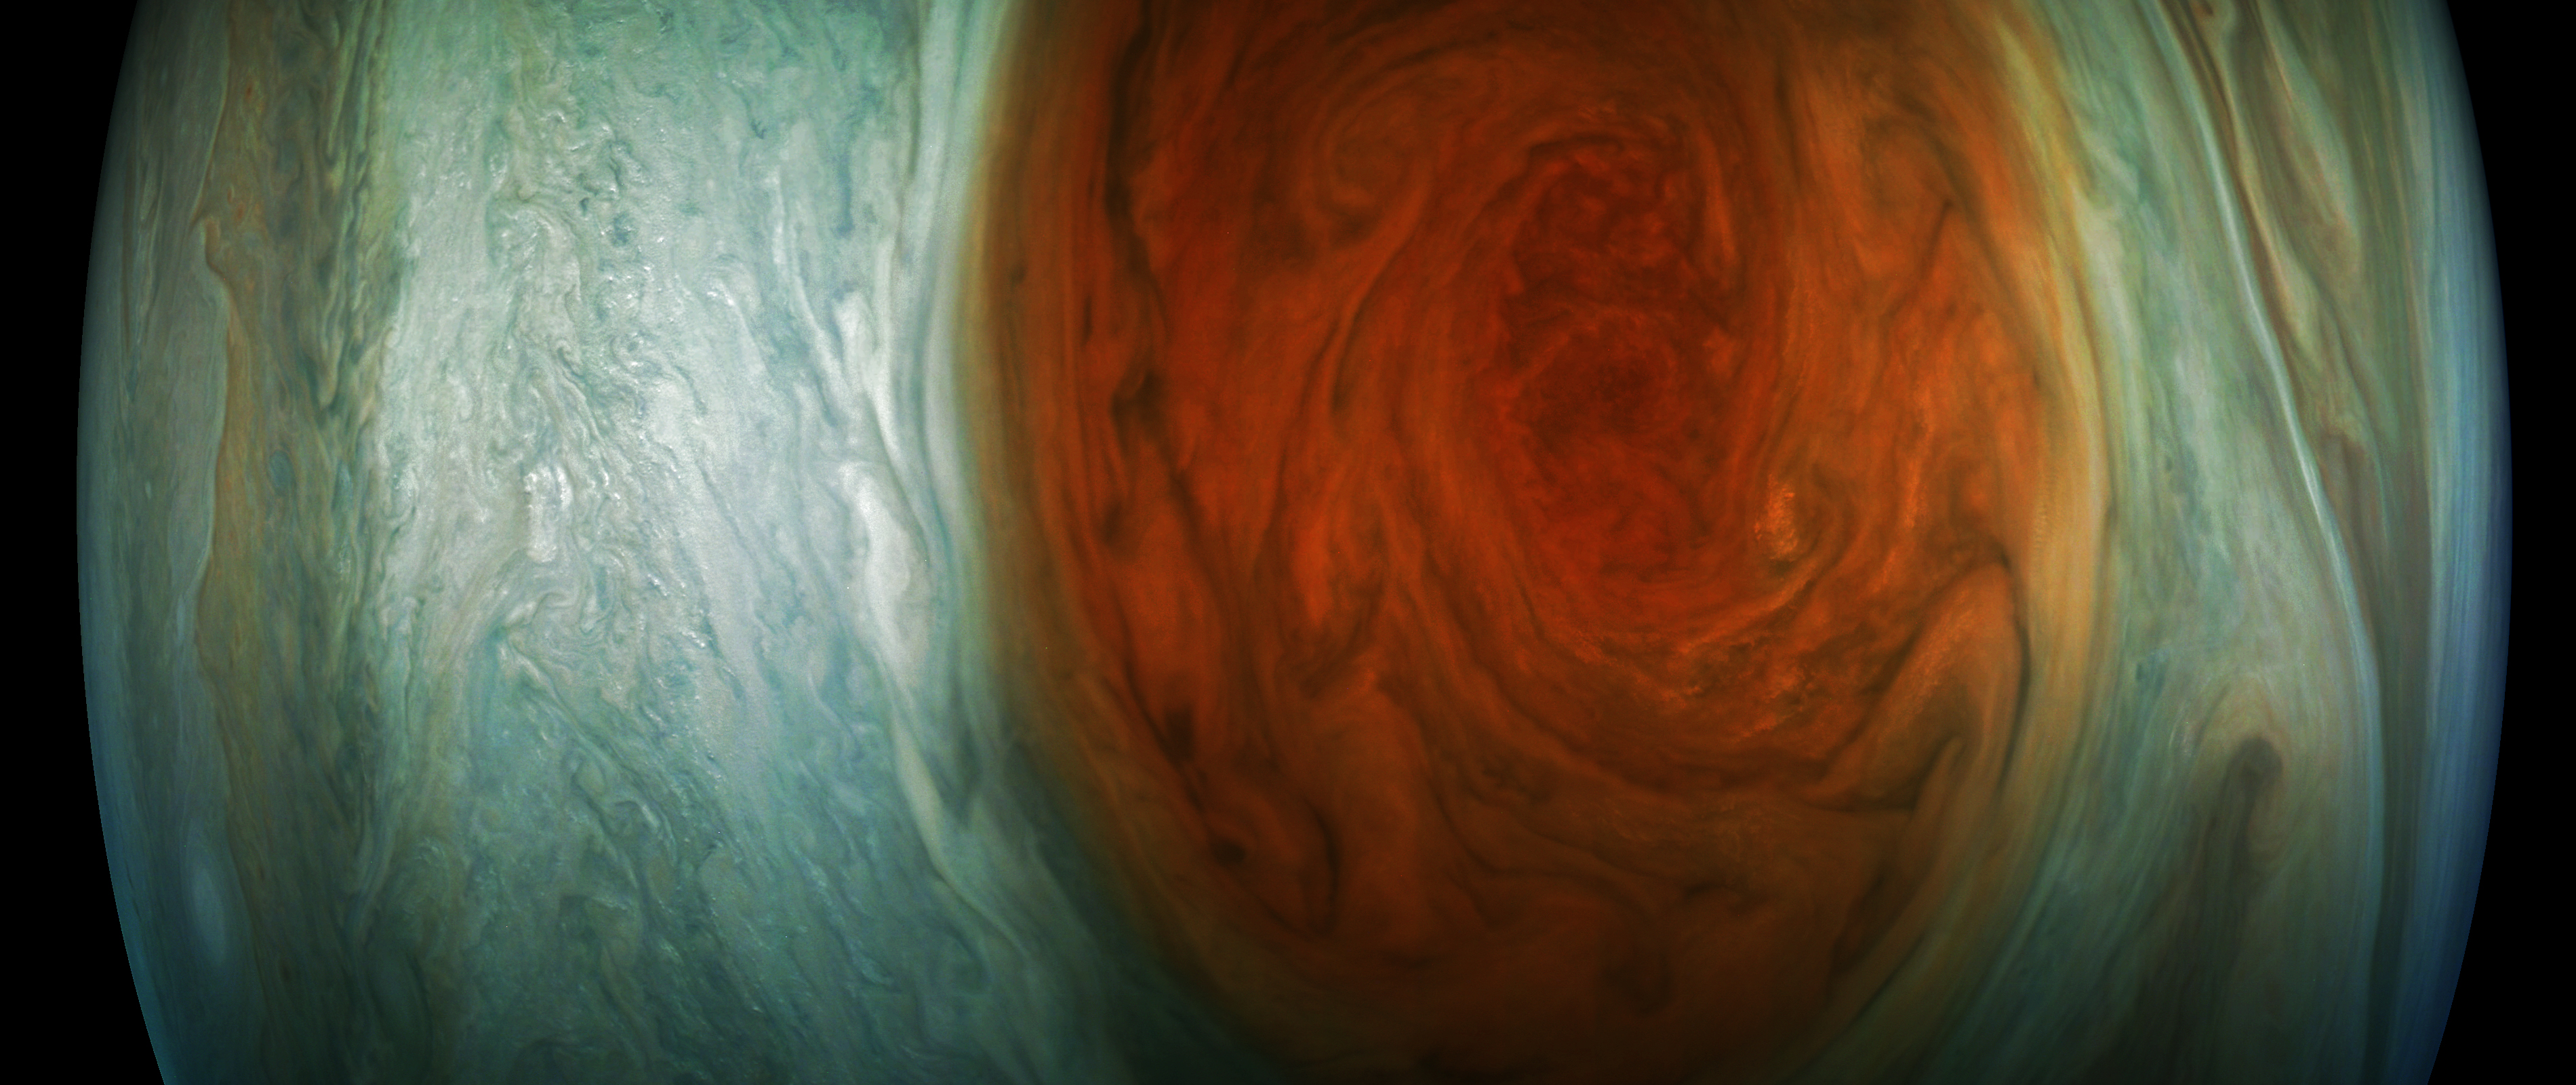 jupiters great red spot enhanced color